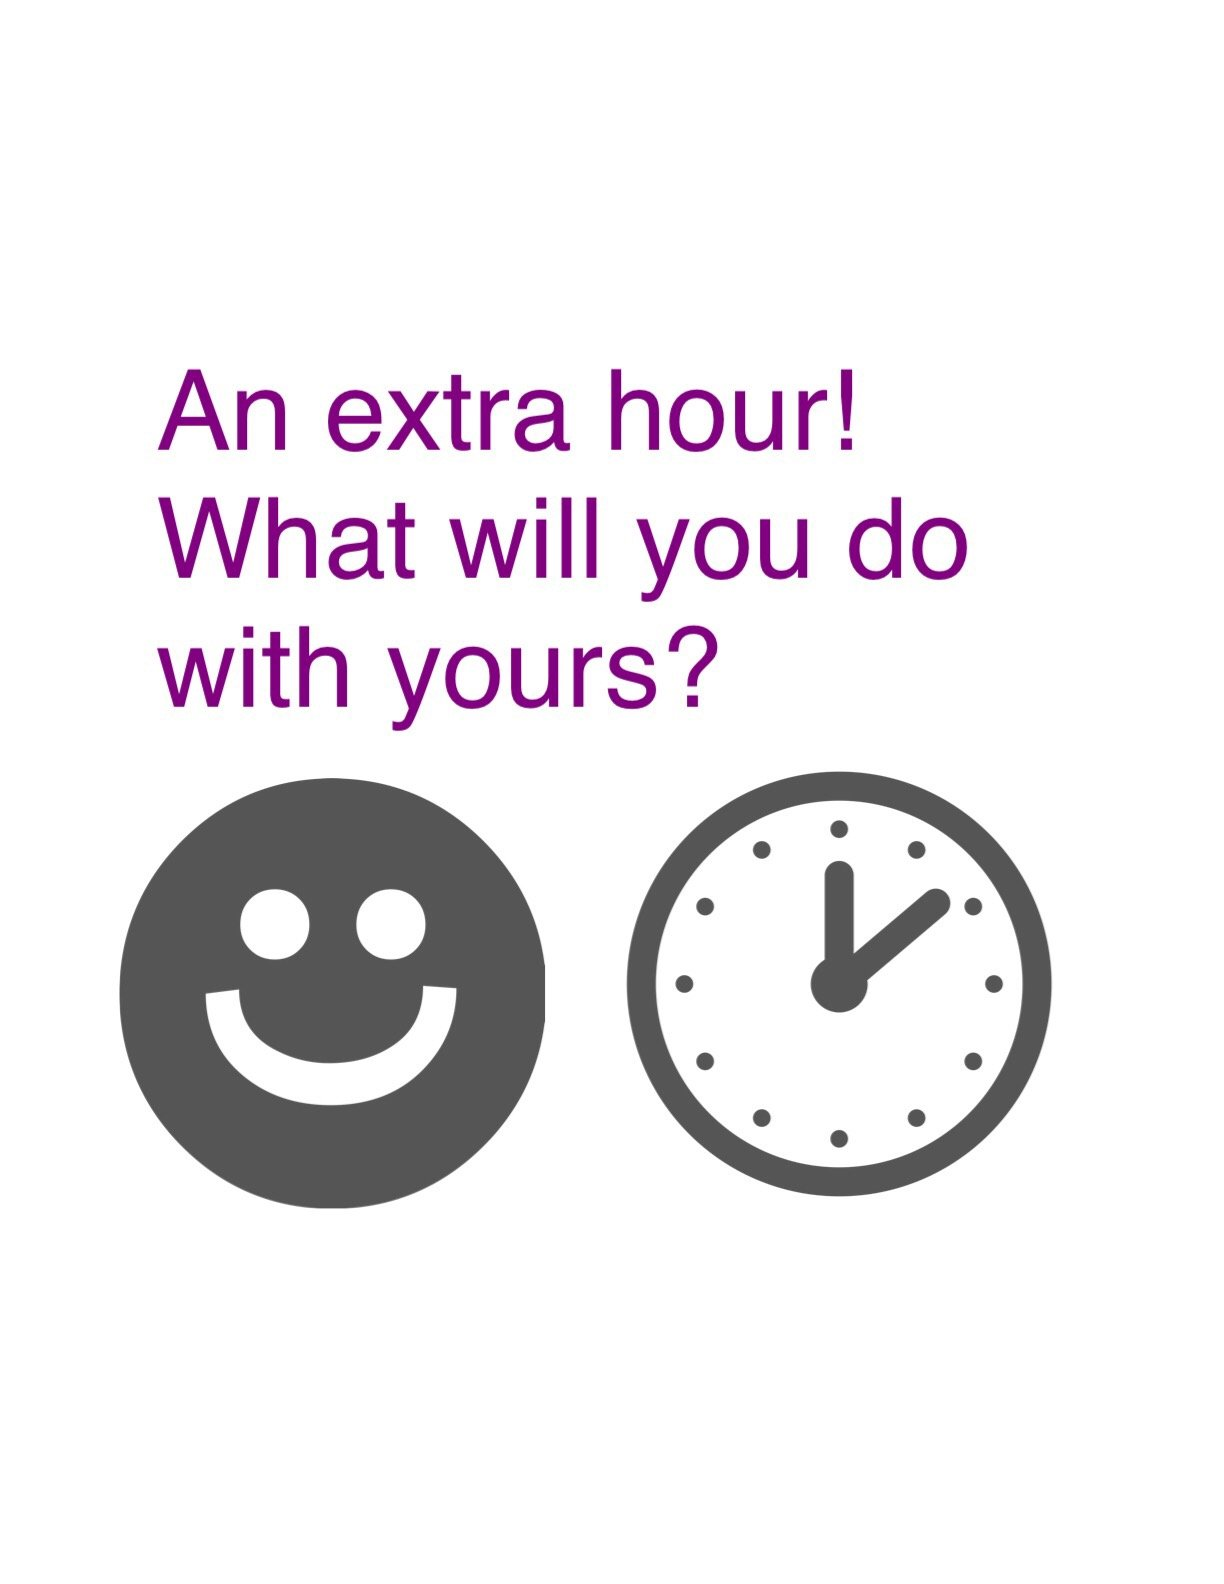 10 things to do with your extra hour